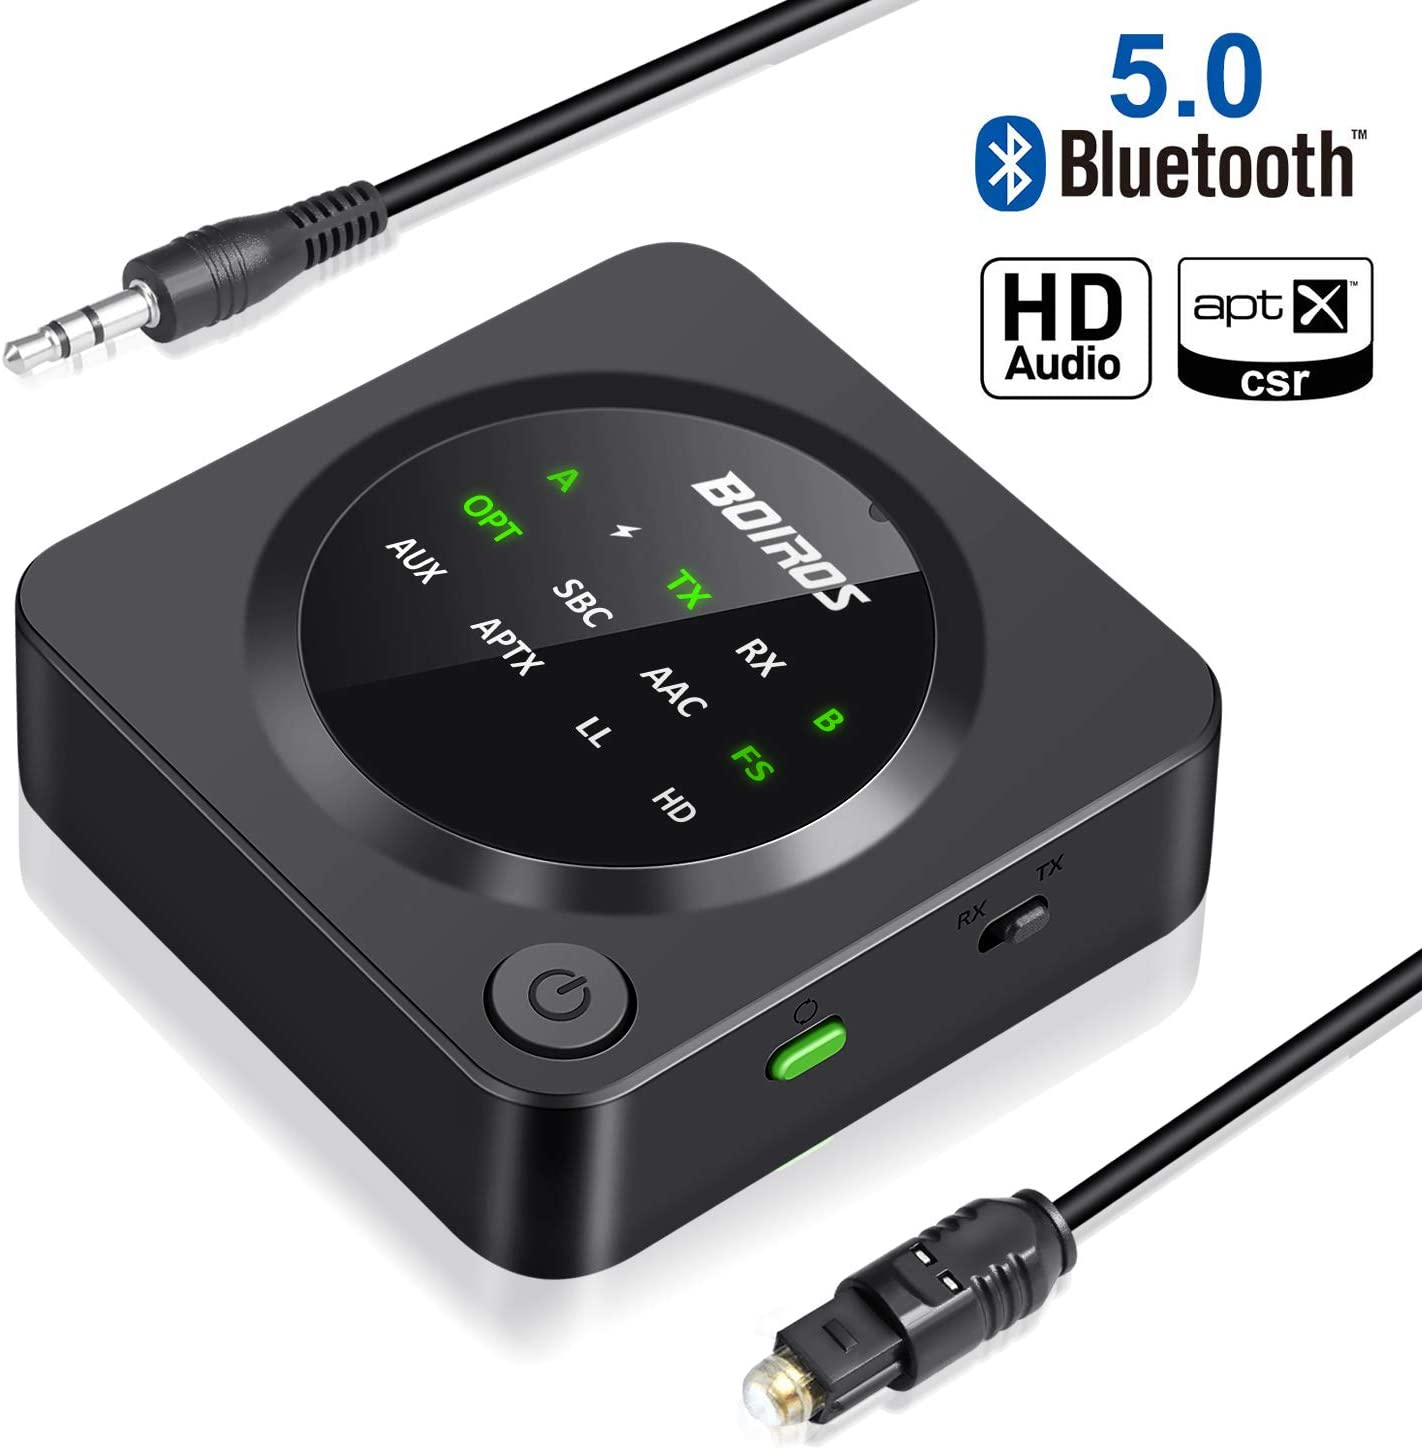 Bluetooth 5.0 Transmitter Receiver Wireless Adapter - 2 in 1 Digital Optical TOSLINK 3.5mm Aux Audio Adapter, aptX Low Latency Pair 2 Headphones Speakers at Once for TV PC Home Stereo System